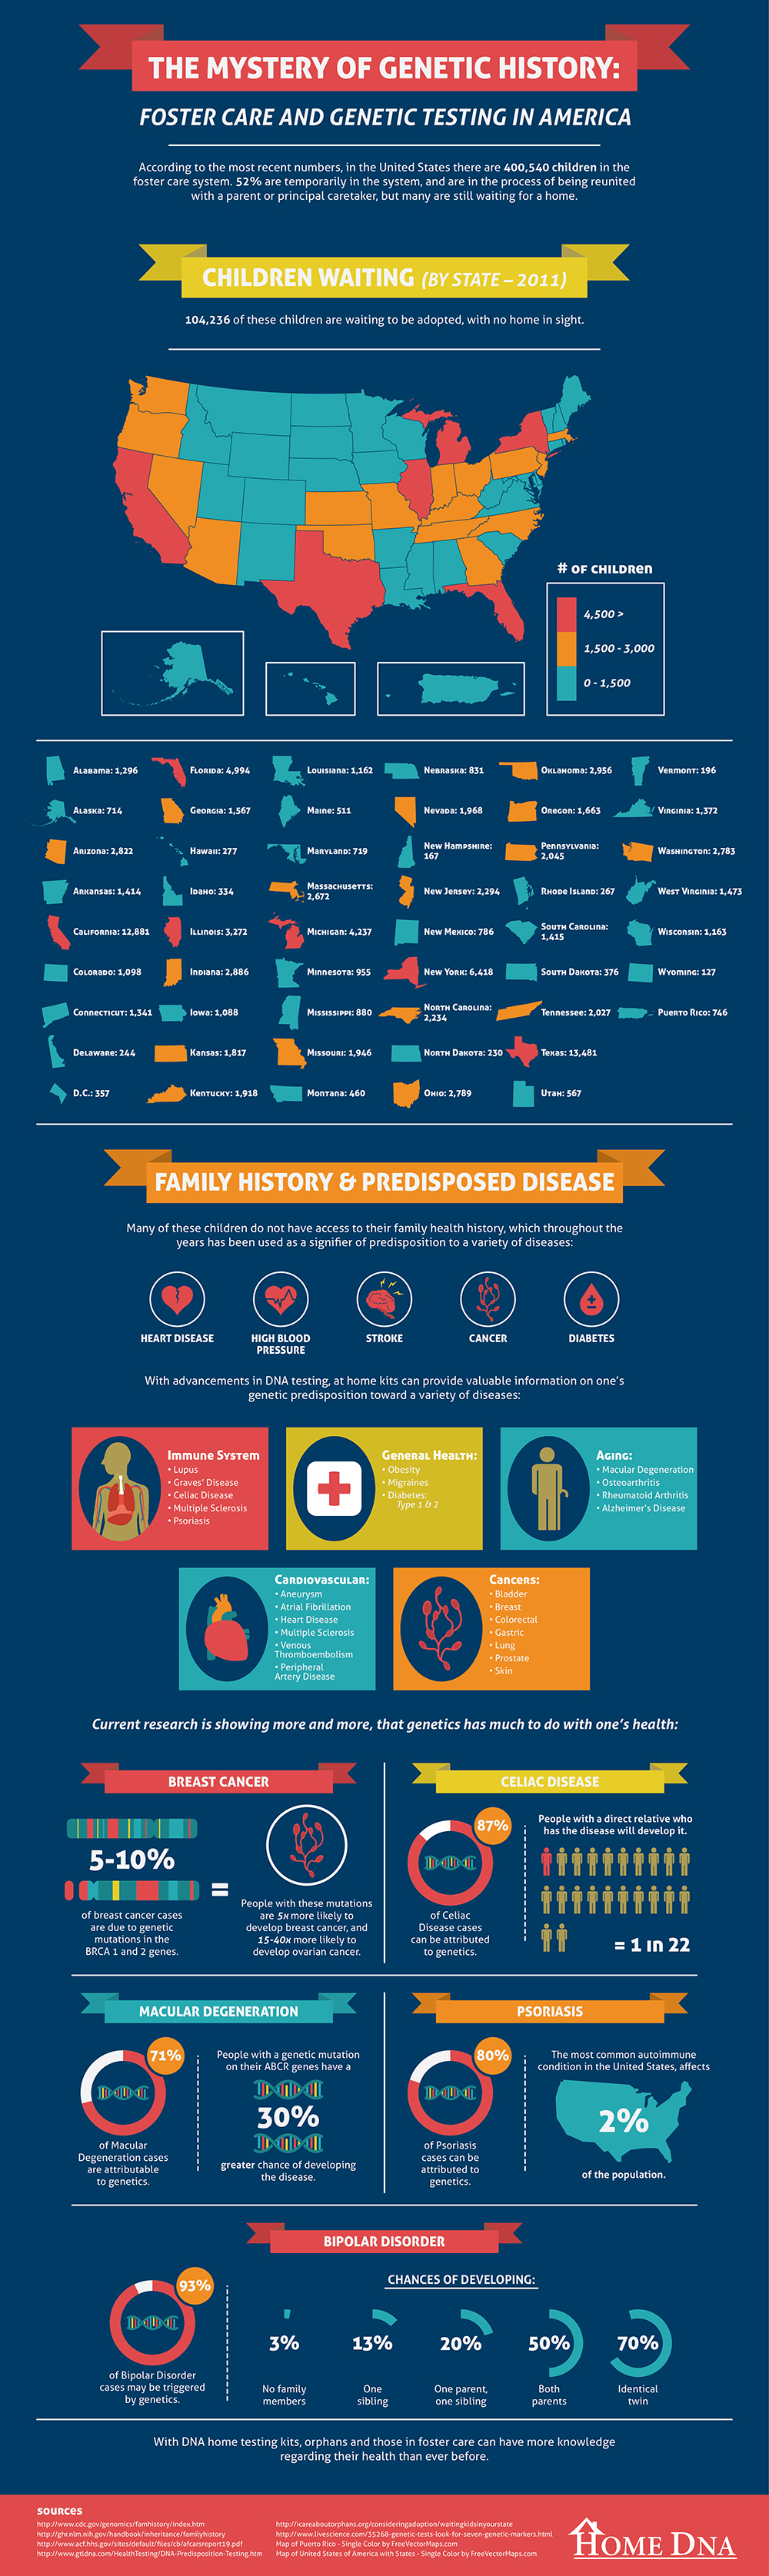 The Mystery of Genetic History [Infographic]